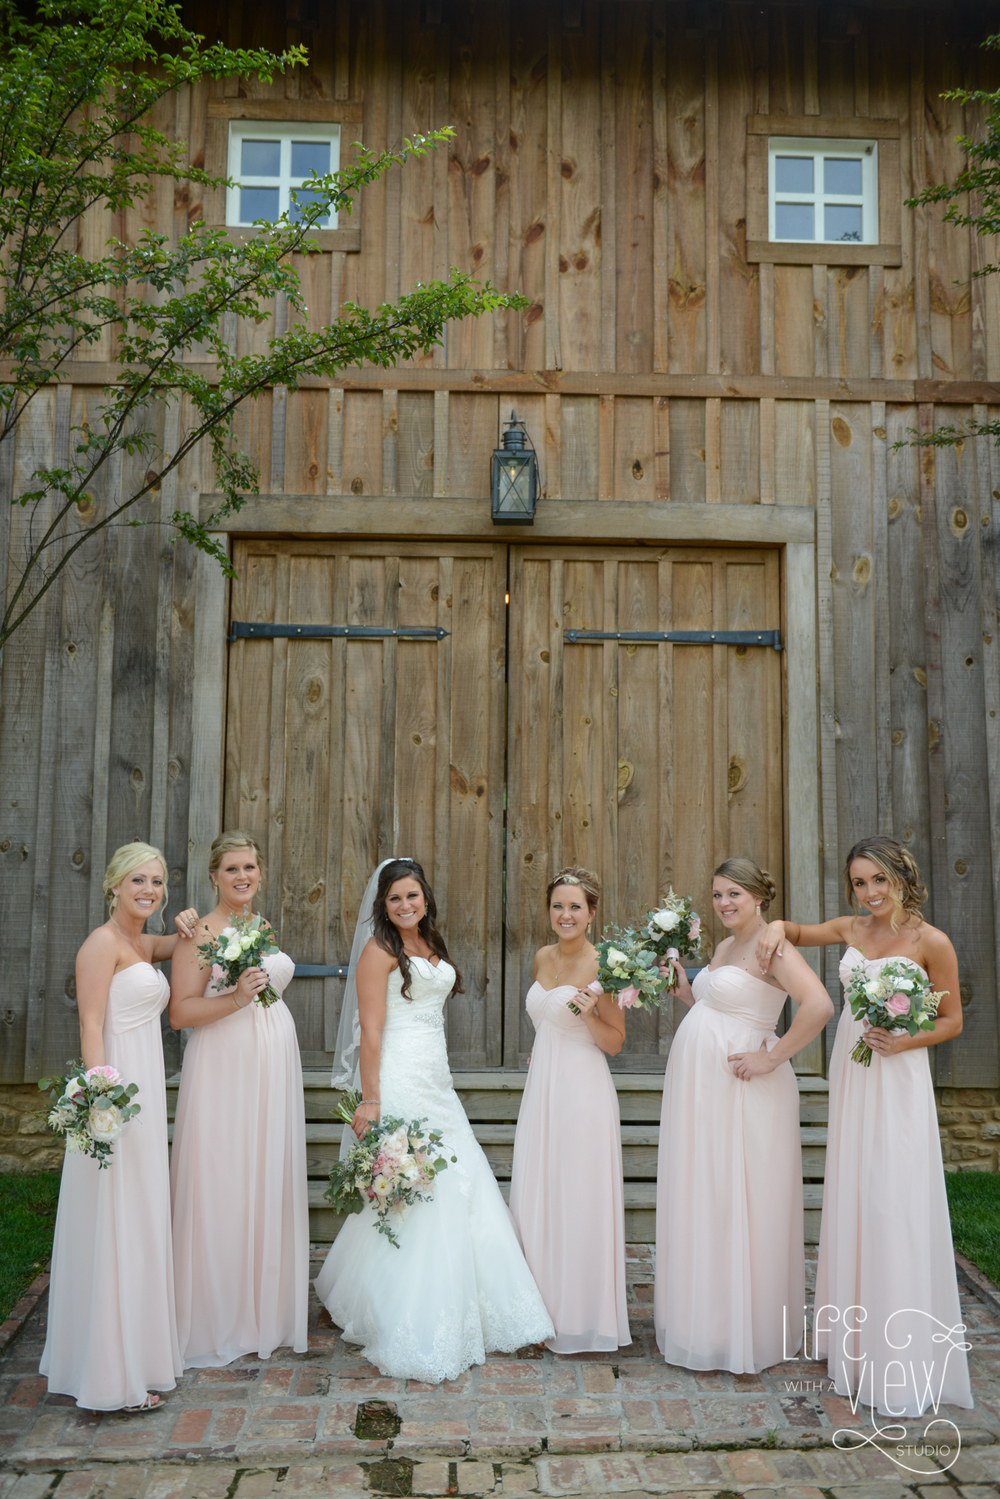 Sumner-Wedding-64.jpg